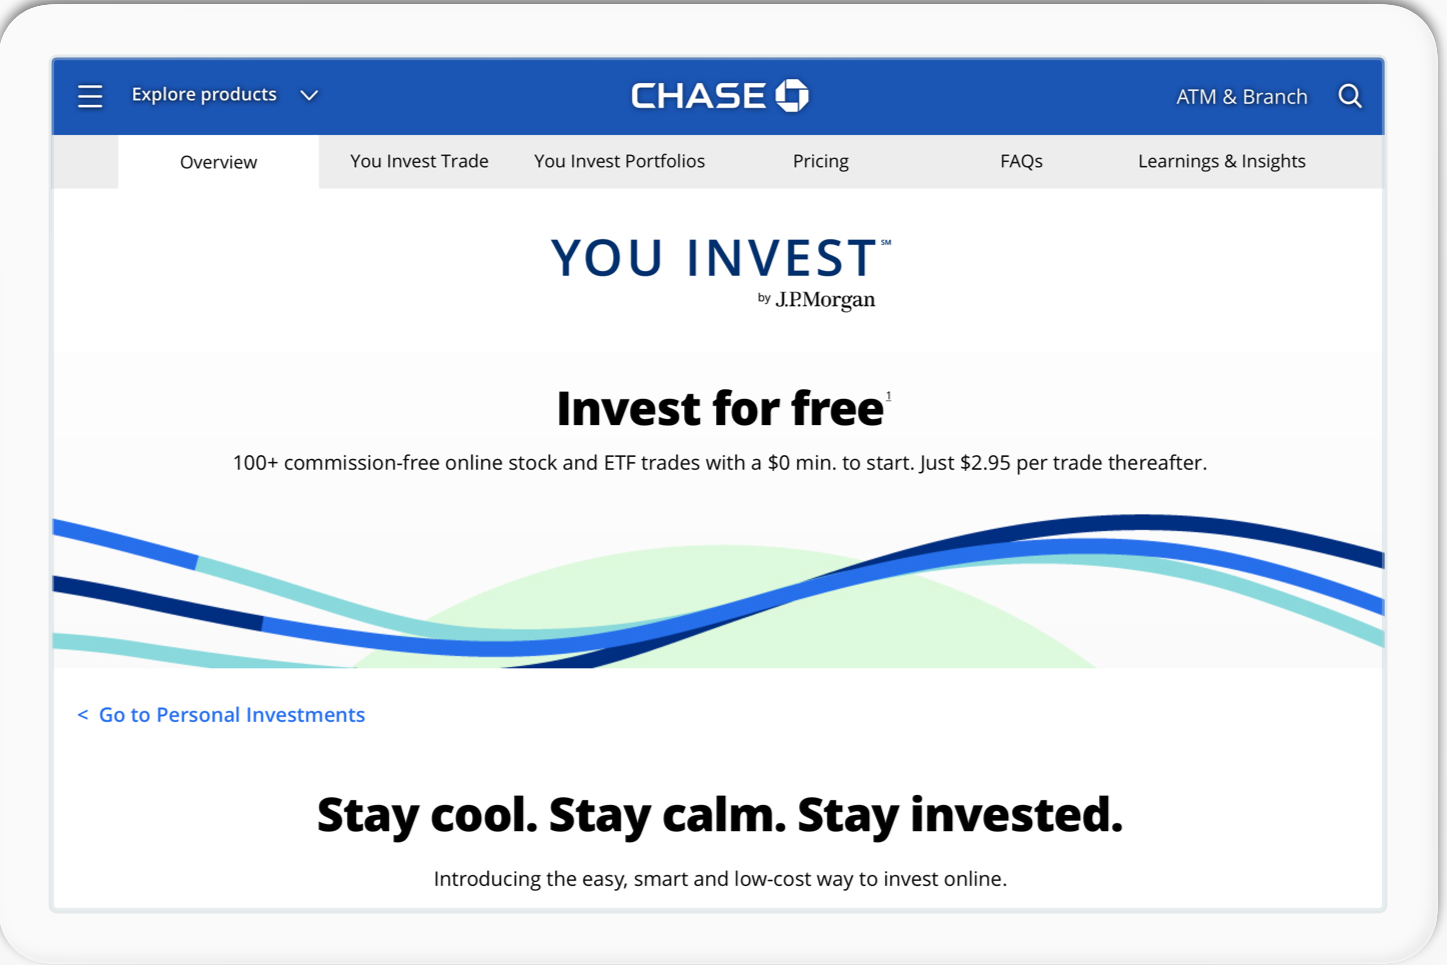 No Elished Satisfied Client Of A Brokerage Will Likely Be Jumping Ship To Open New Chase Account Said Alois Pirker Research Director At